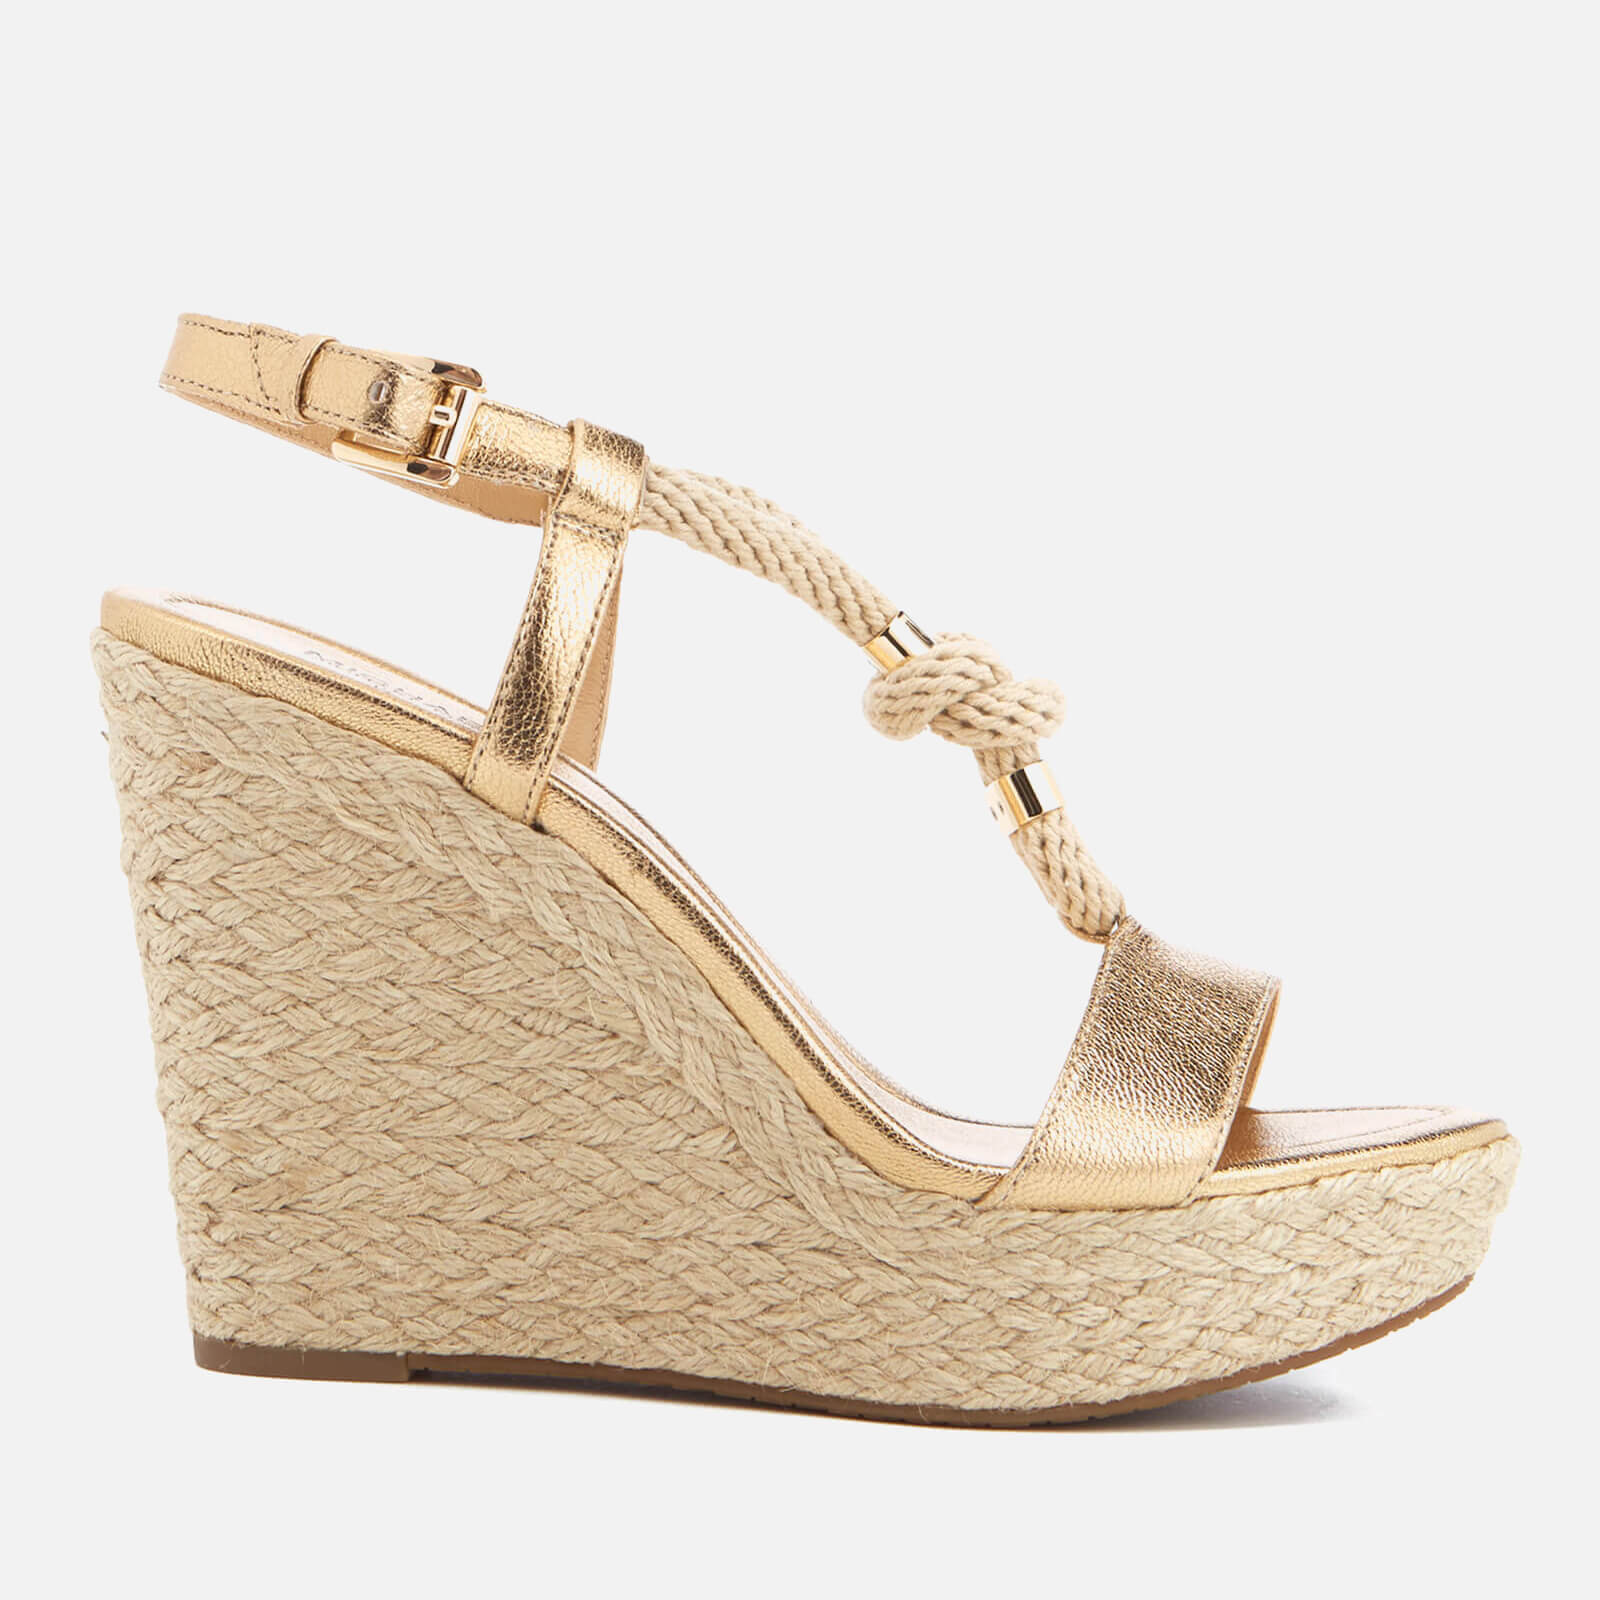 31588c68103f MICHAEL MICHAEL KORS Women s Holly Rope Strap Wedged Sandals - Pale Gold -  Free UK Delivery over £50